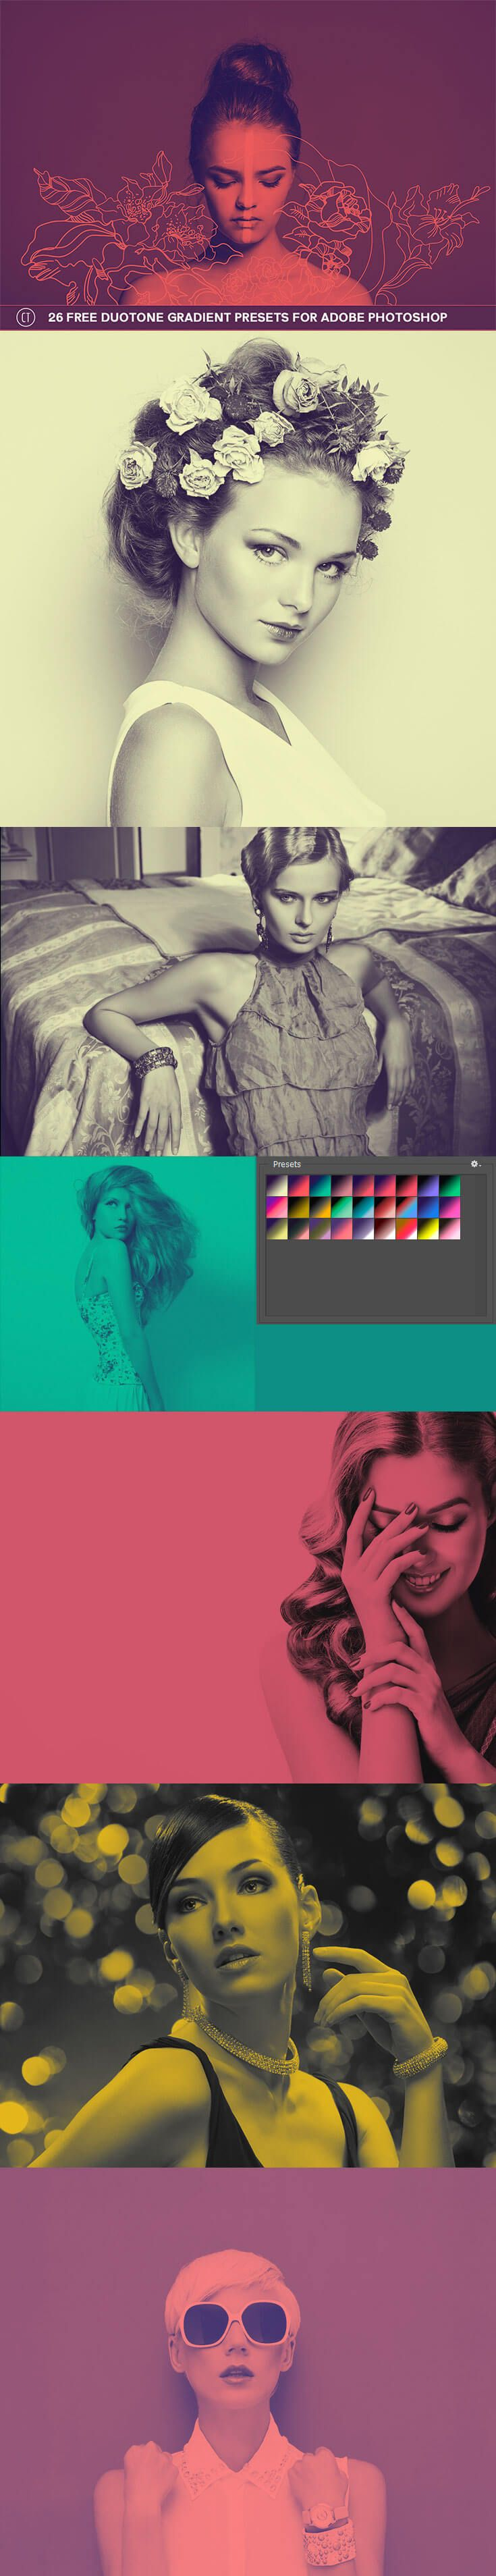 26 Free #Duotone Gradient Presets for Adobe Photoshop users is our new gradient collection presets which contains vibrant and unique colour combinations.